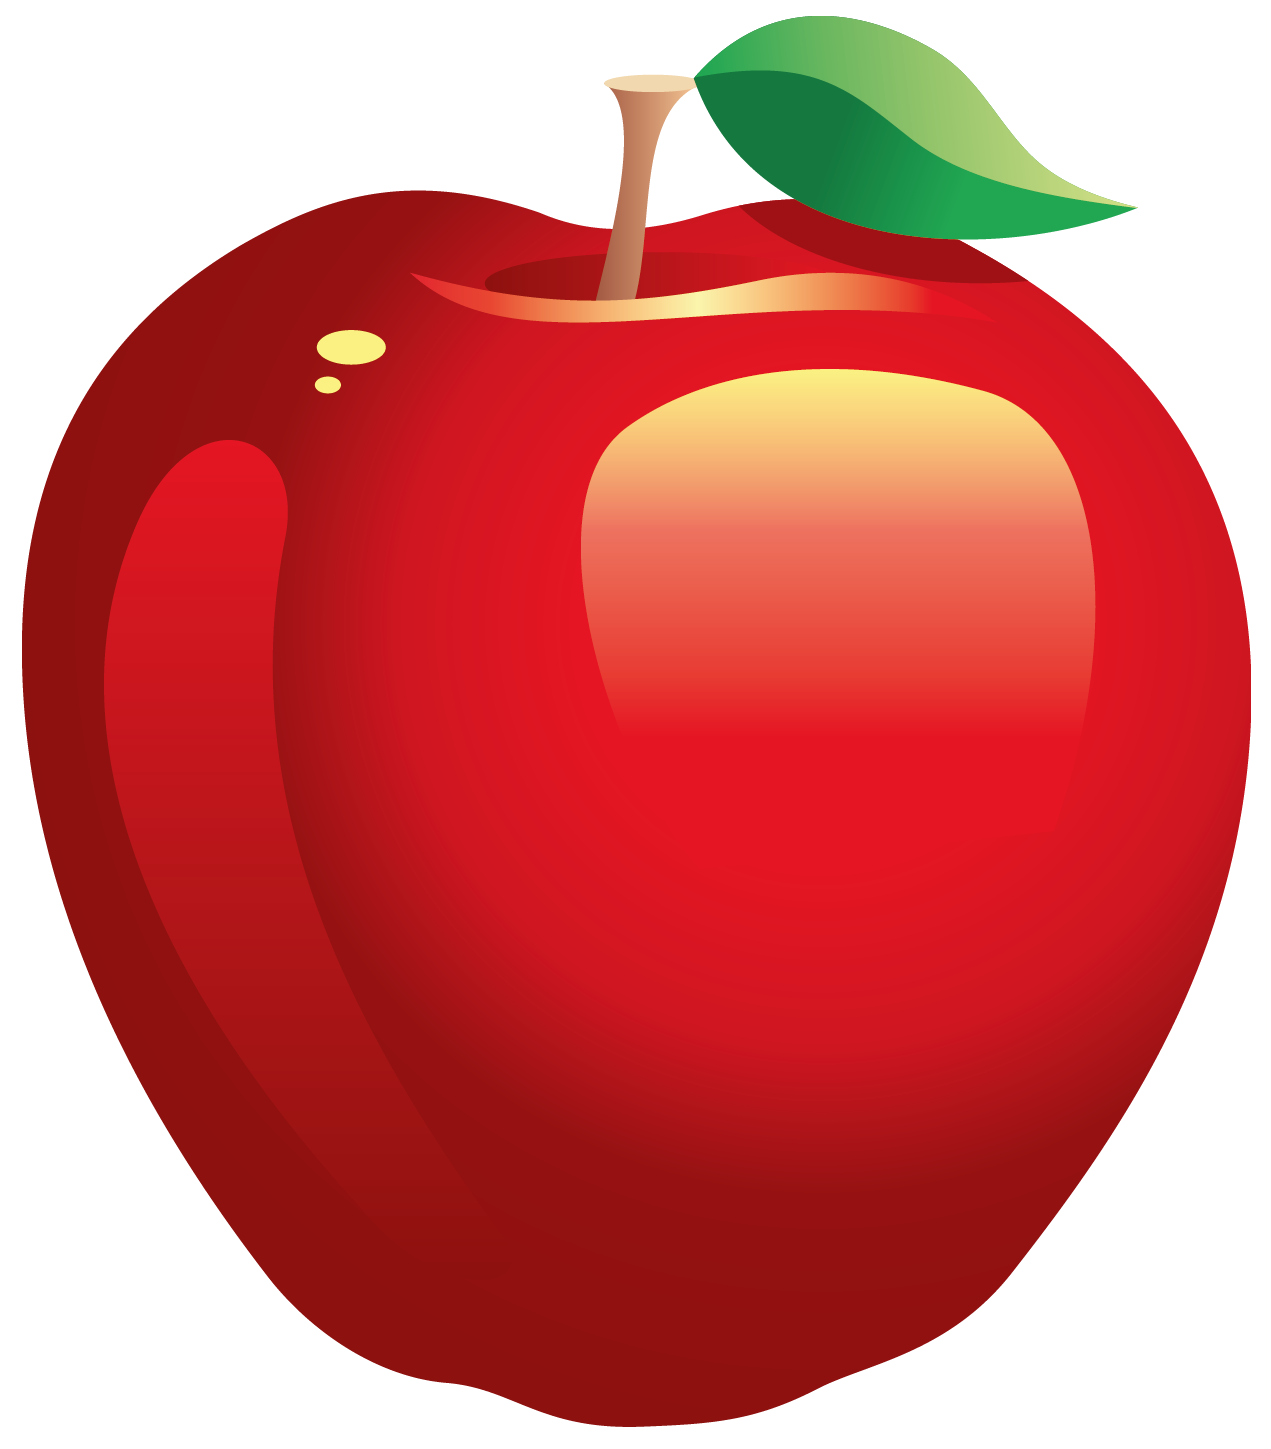 File Navionics Apple Team Png Wikimedia Commons Apple Picture Apple Clip Art Red Apple